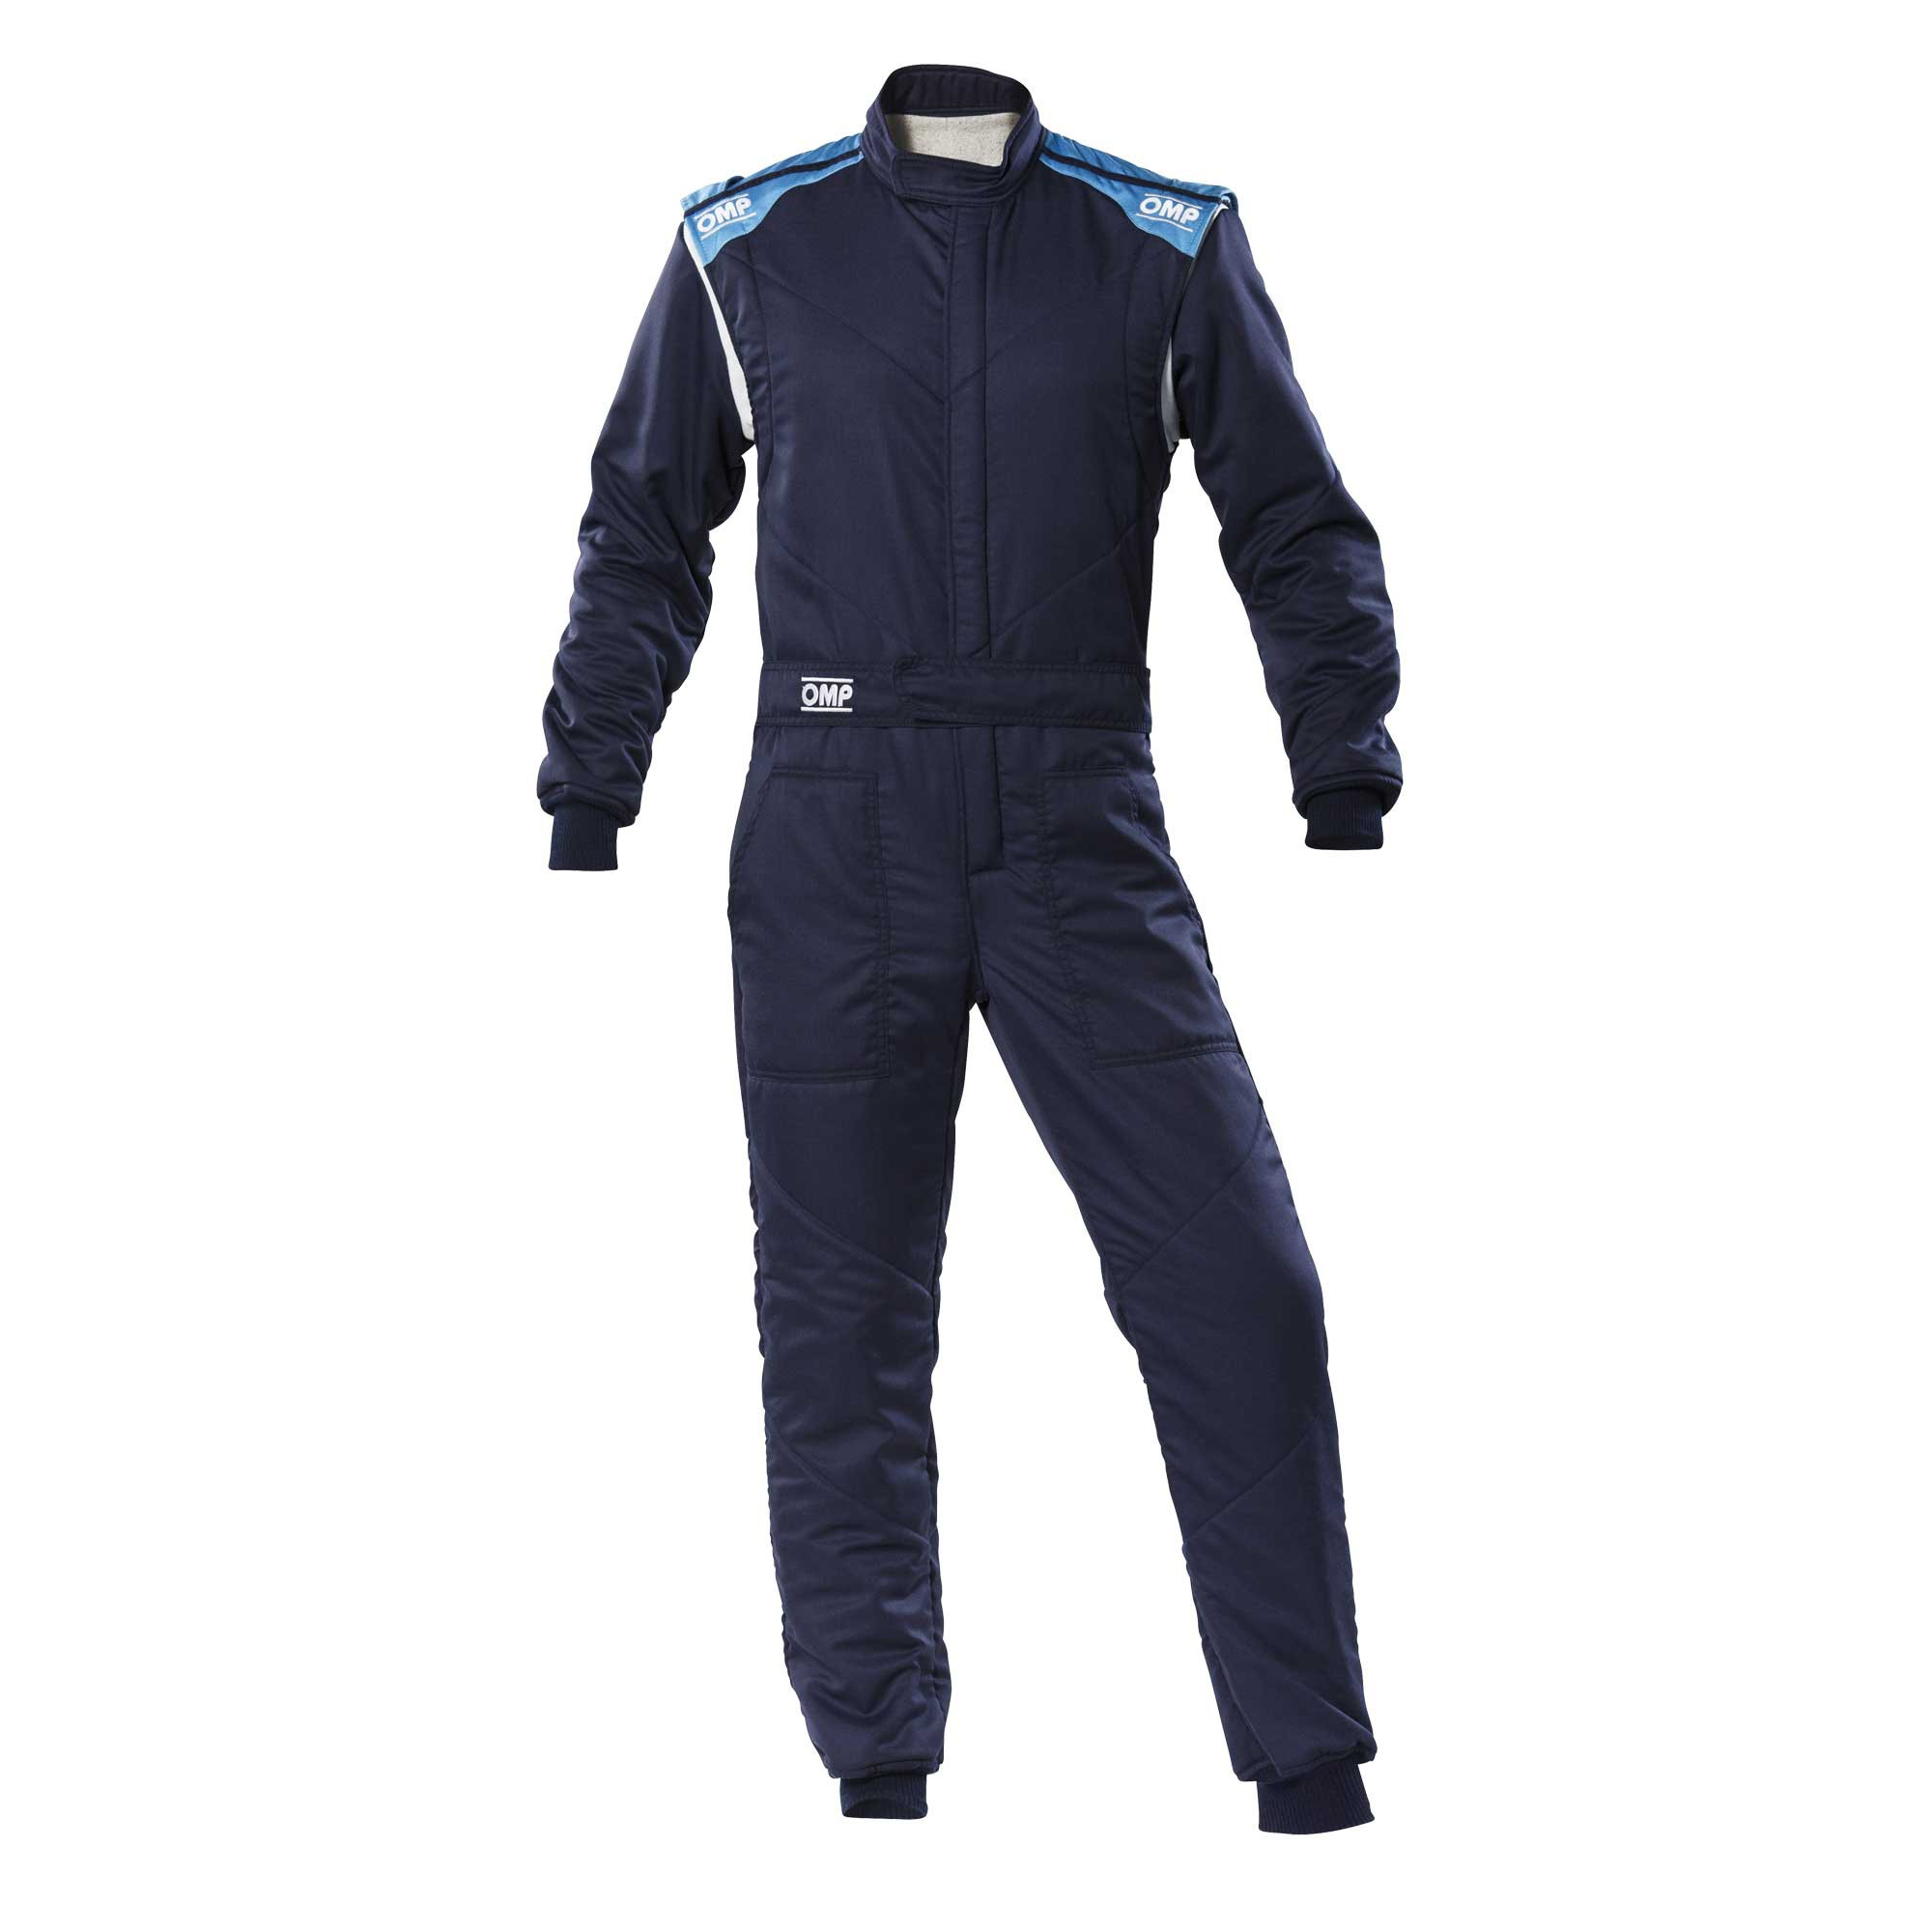 FIRST-S OVERALL NAVY BLUE/CYAN SIZE 44 FIA 8856-2018